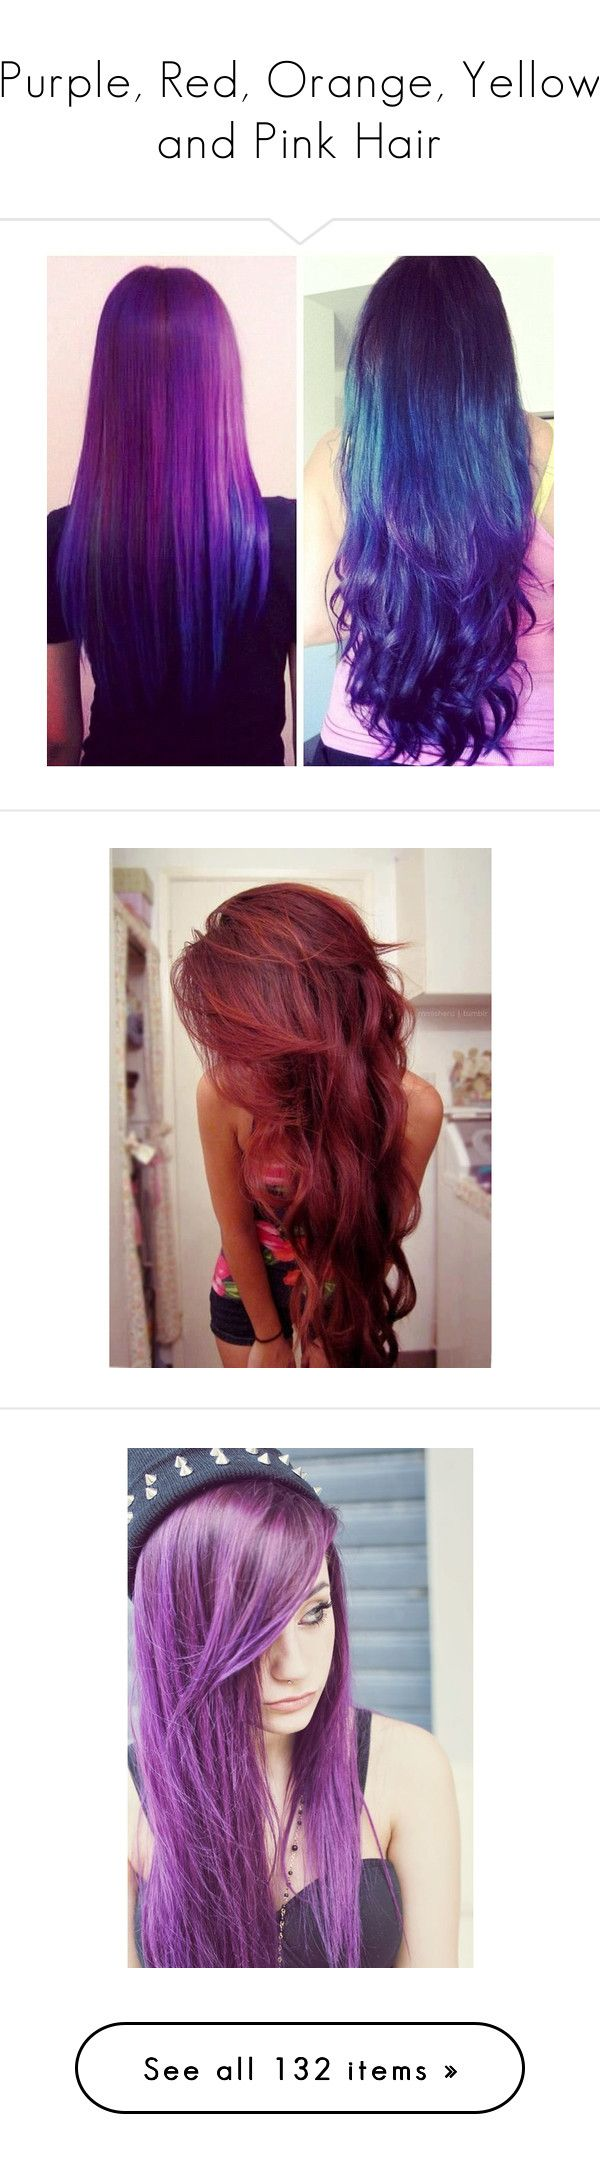 """""""Purple, Red, Orange, Yellow and Pink Hair"""" by megsjessd99 ❤ liked on Polyvore featuring beauty products, haircare, hair styling tools, hair, hair styles, beauty, purple, hairstyles, cabelos and people"""